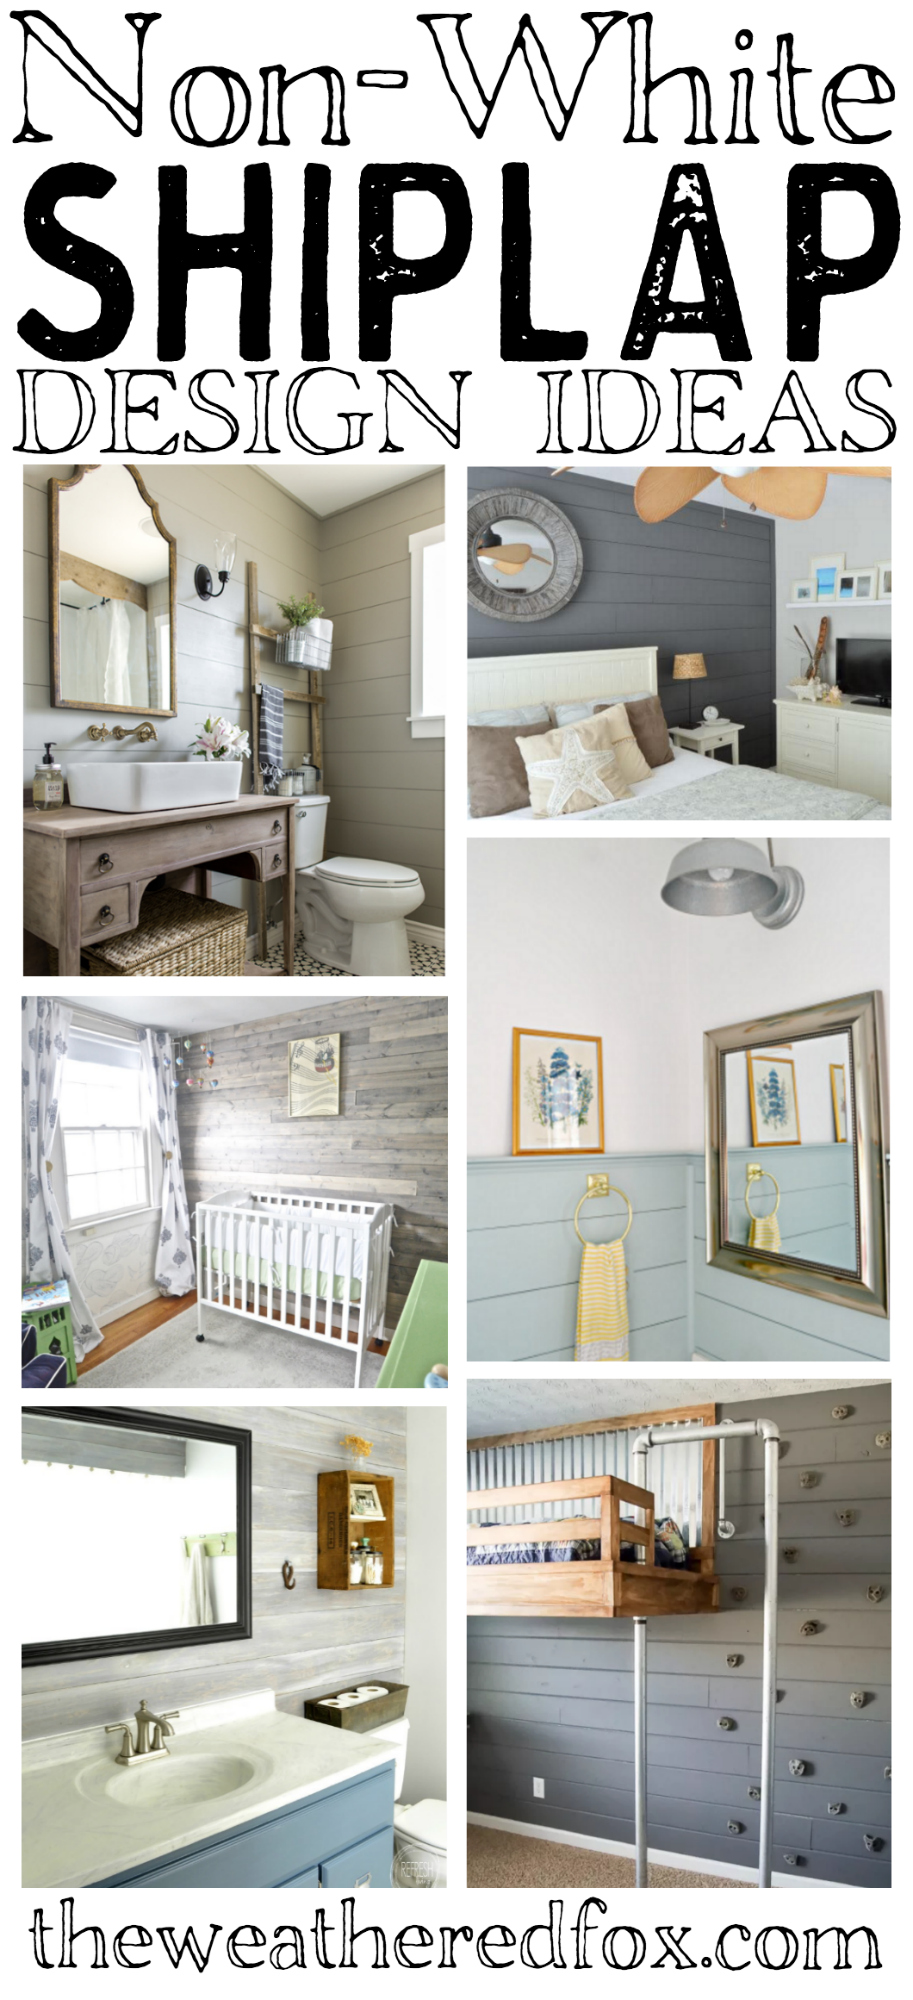 Amazing Non White Shiplap Ideas For Those Who Need A Little Color On Their Walls The Weathered Fox